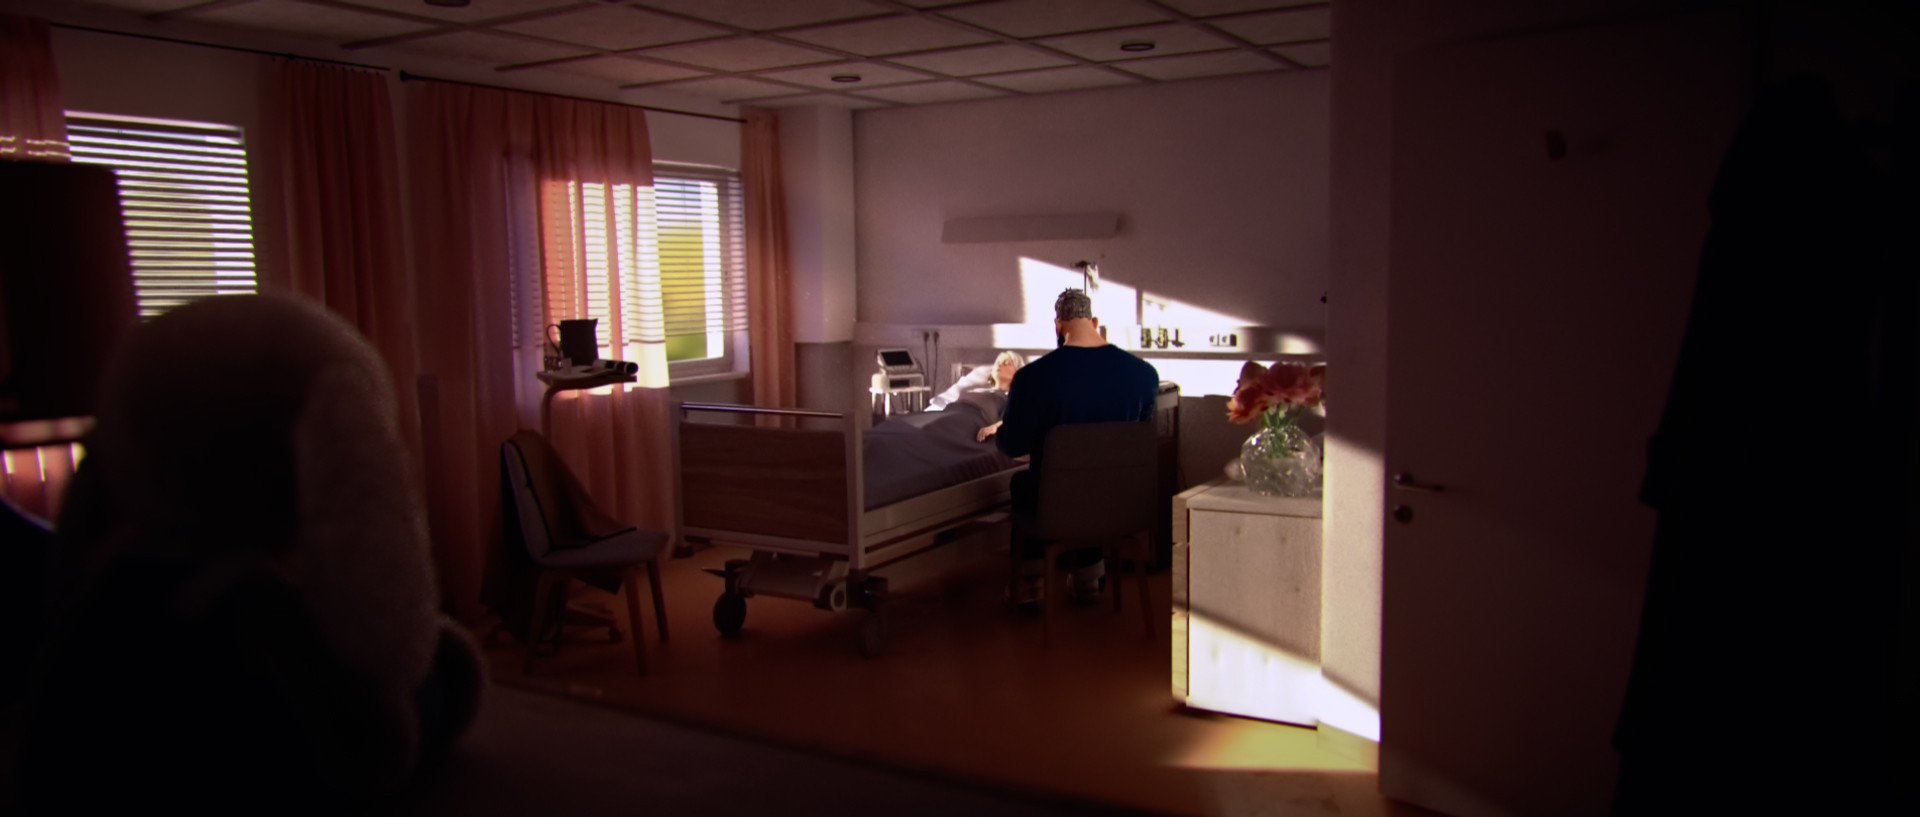 In the hospital we can finally see the two characters together. The father continues to watch over Emily with tenderness and despair when there's a startle in Emily's eyes.